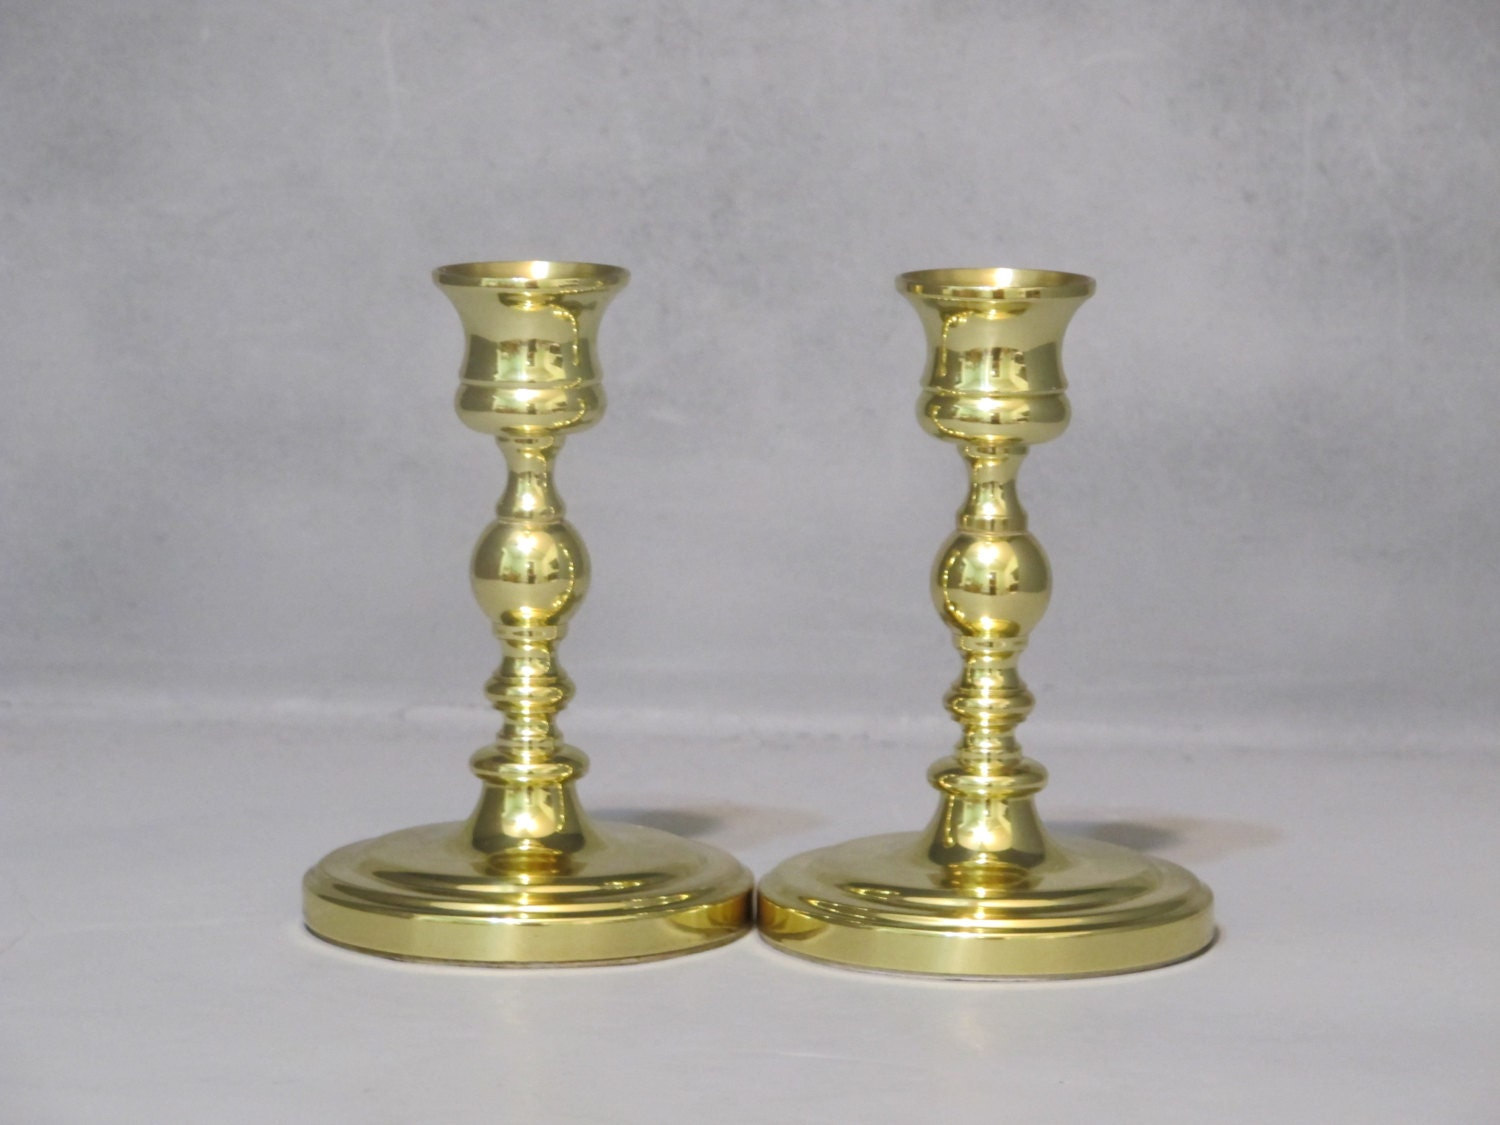 Vintage Baldwin Brass Candle Holders Set Of 2 Pair Of Small